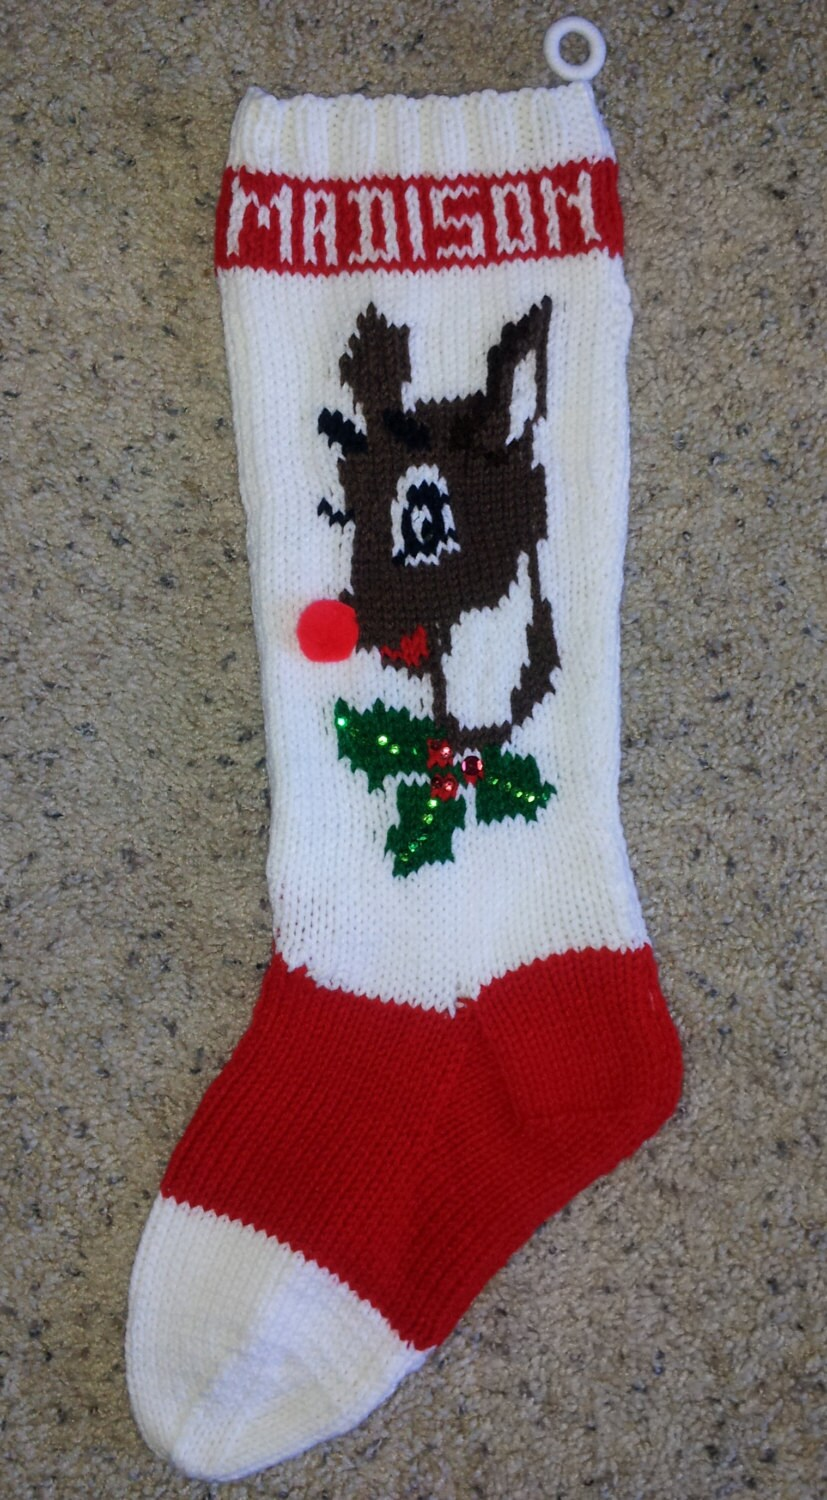 Hand Knit Christmas Stocking Patterns : Items similar to Hand Knitted Christmas Stocking Reindeer ...